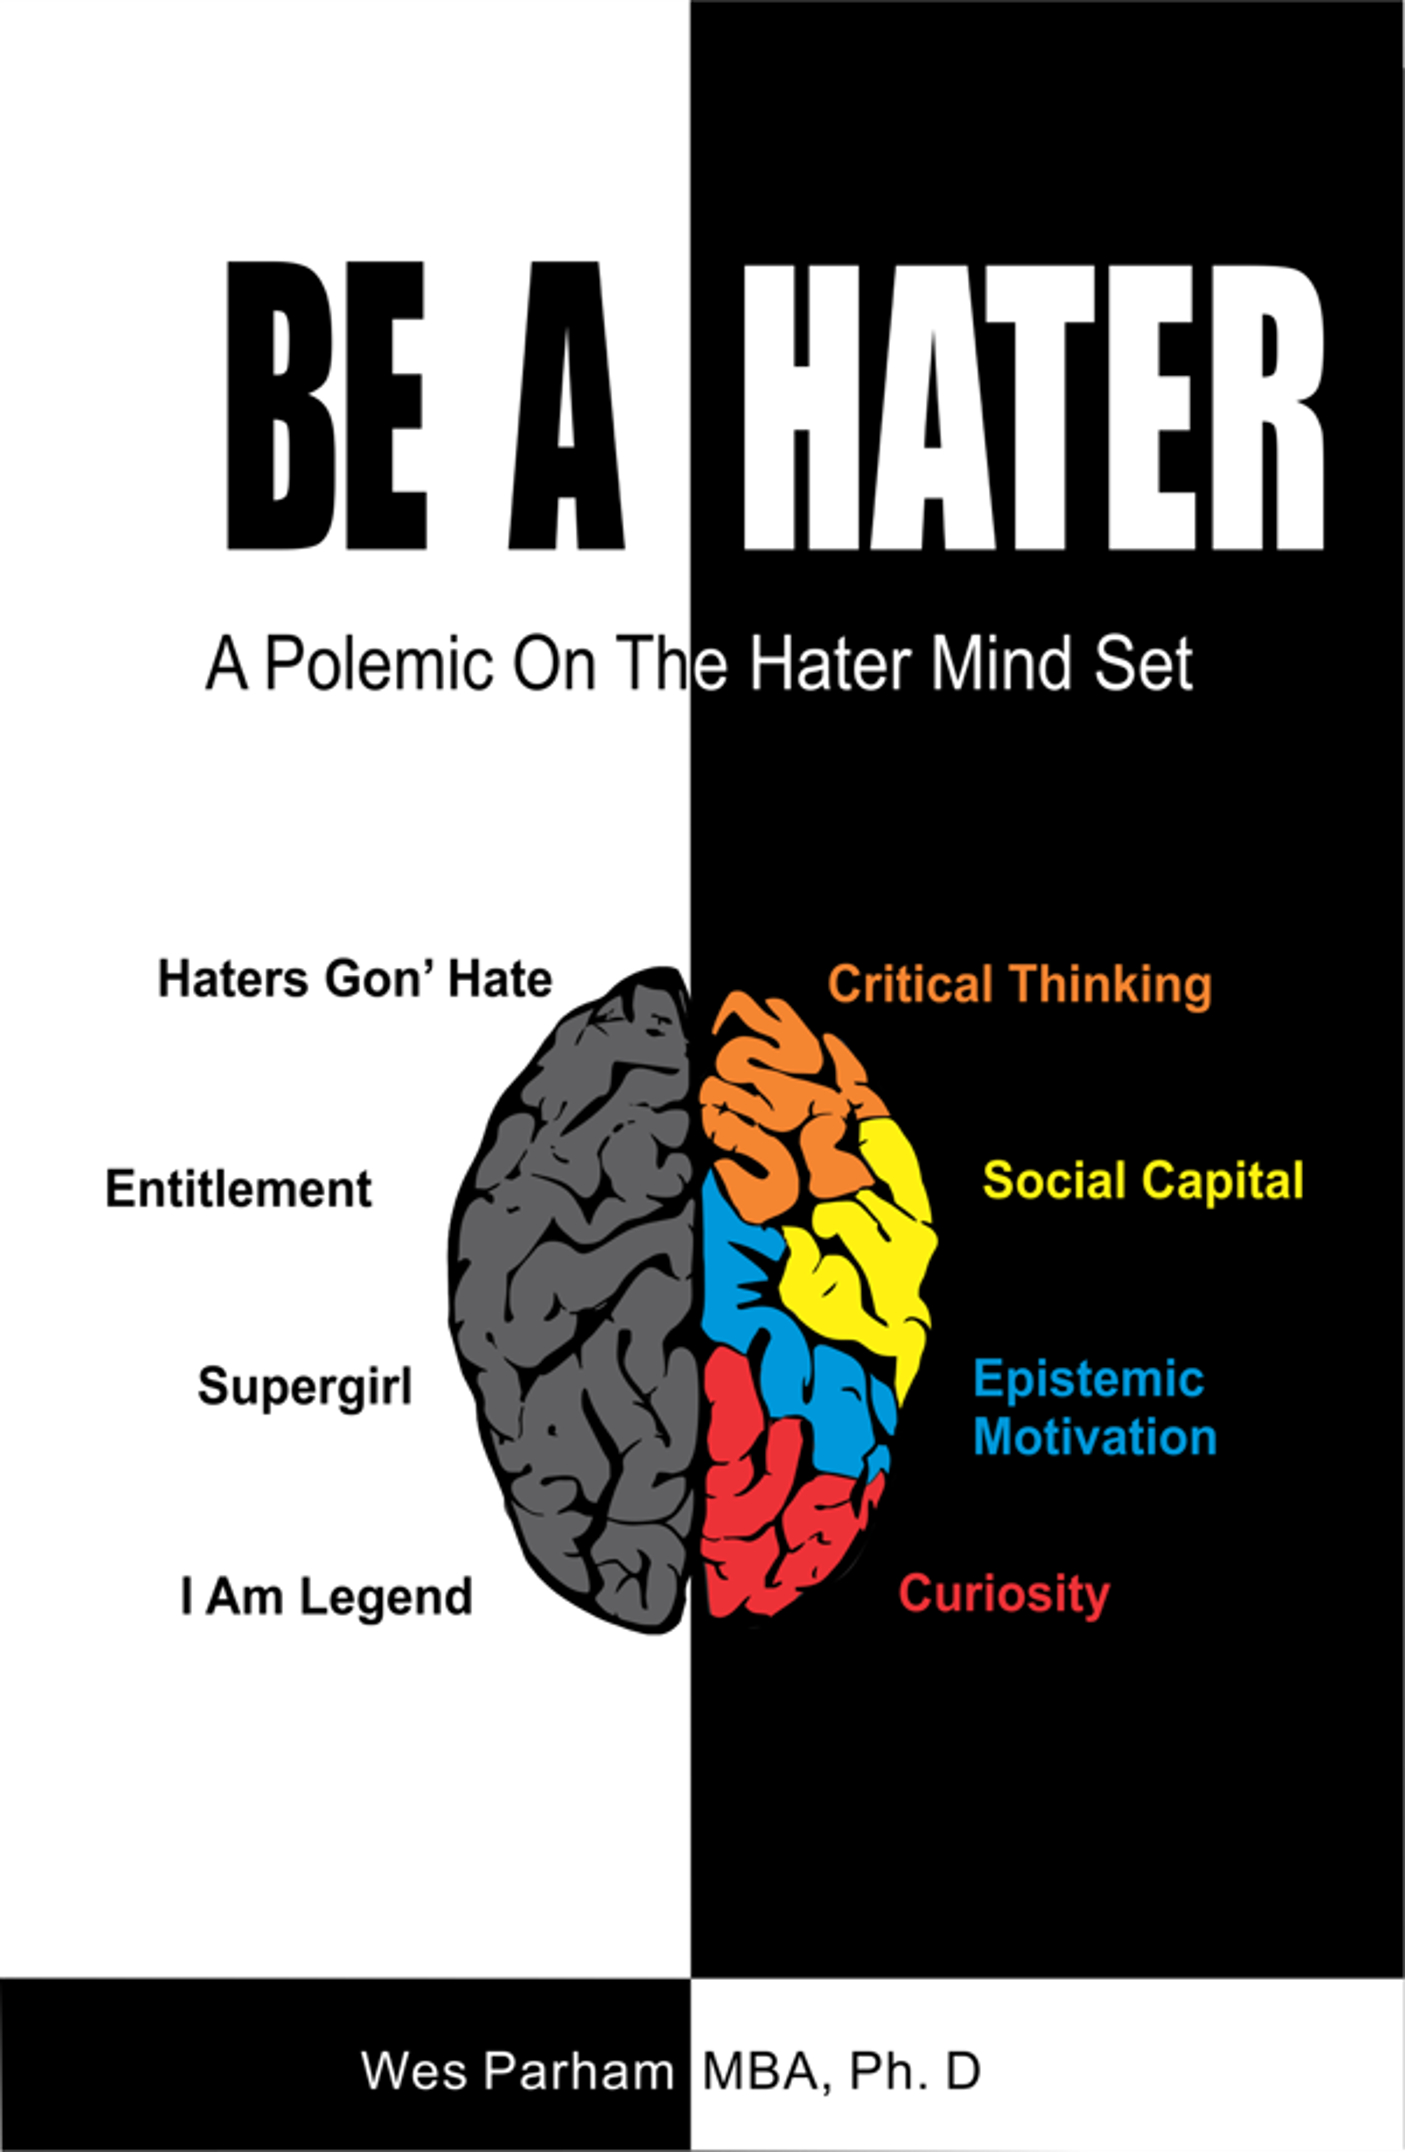 Be A Hater: A Polemic on the Hater Mindset, an Ebook by Wes Parham MBA Ph D